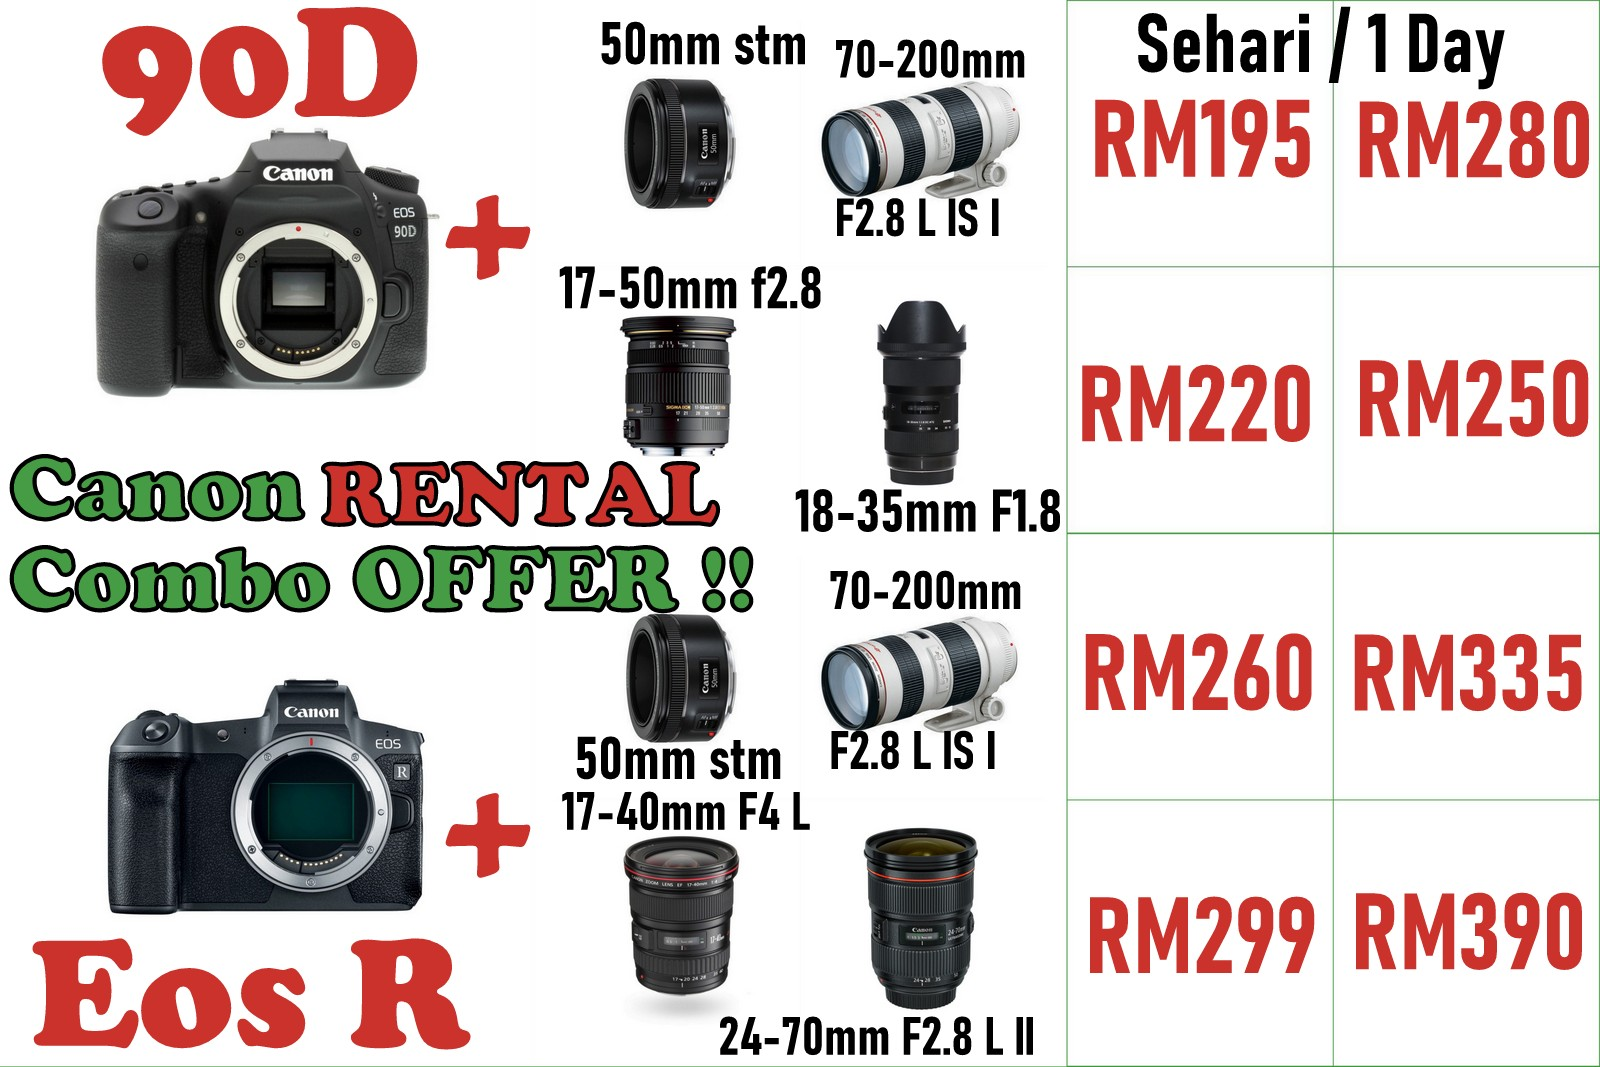 Latest Camera Offer!